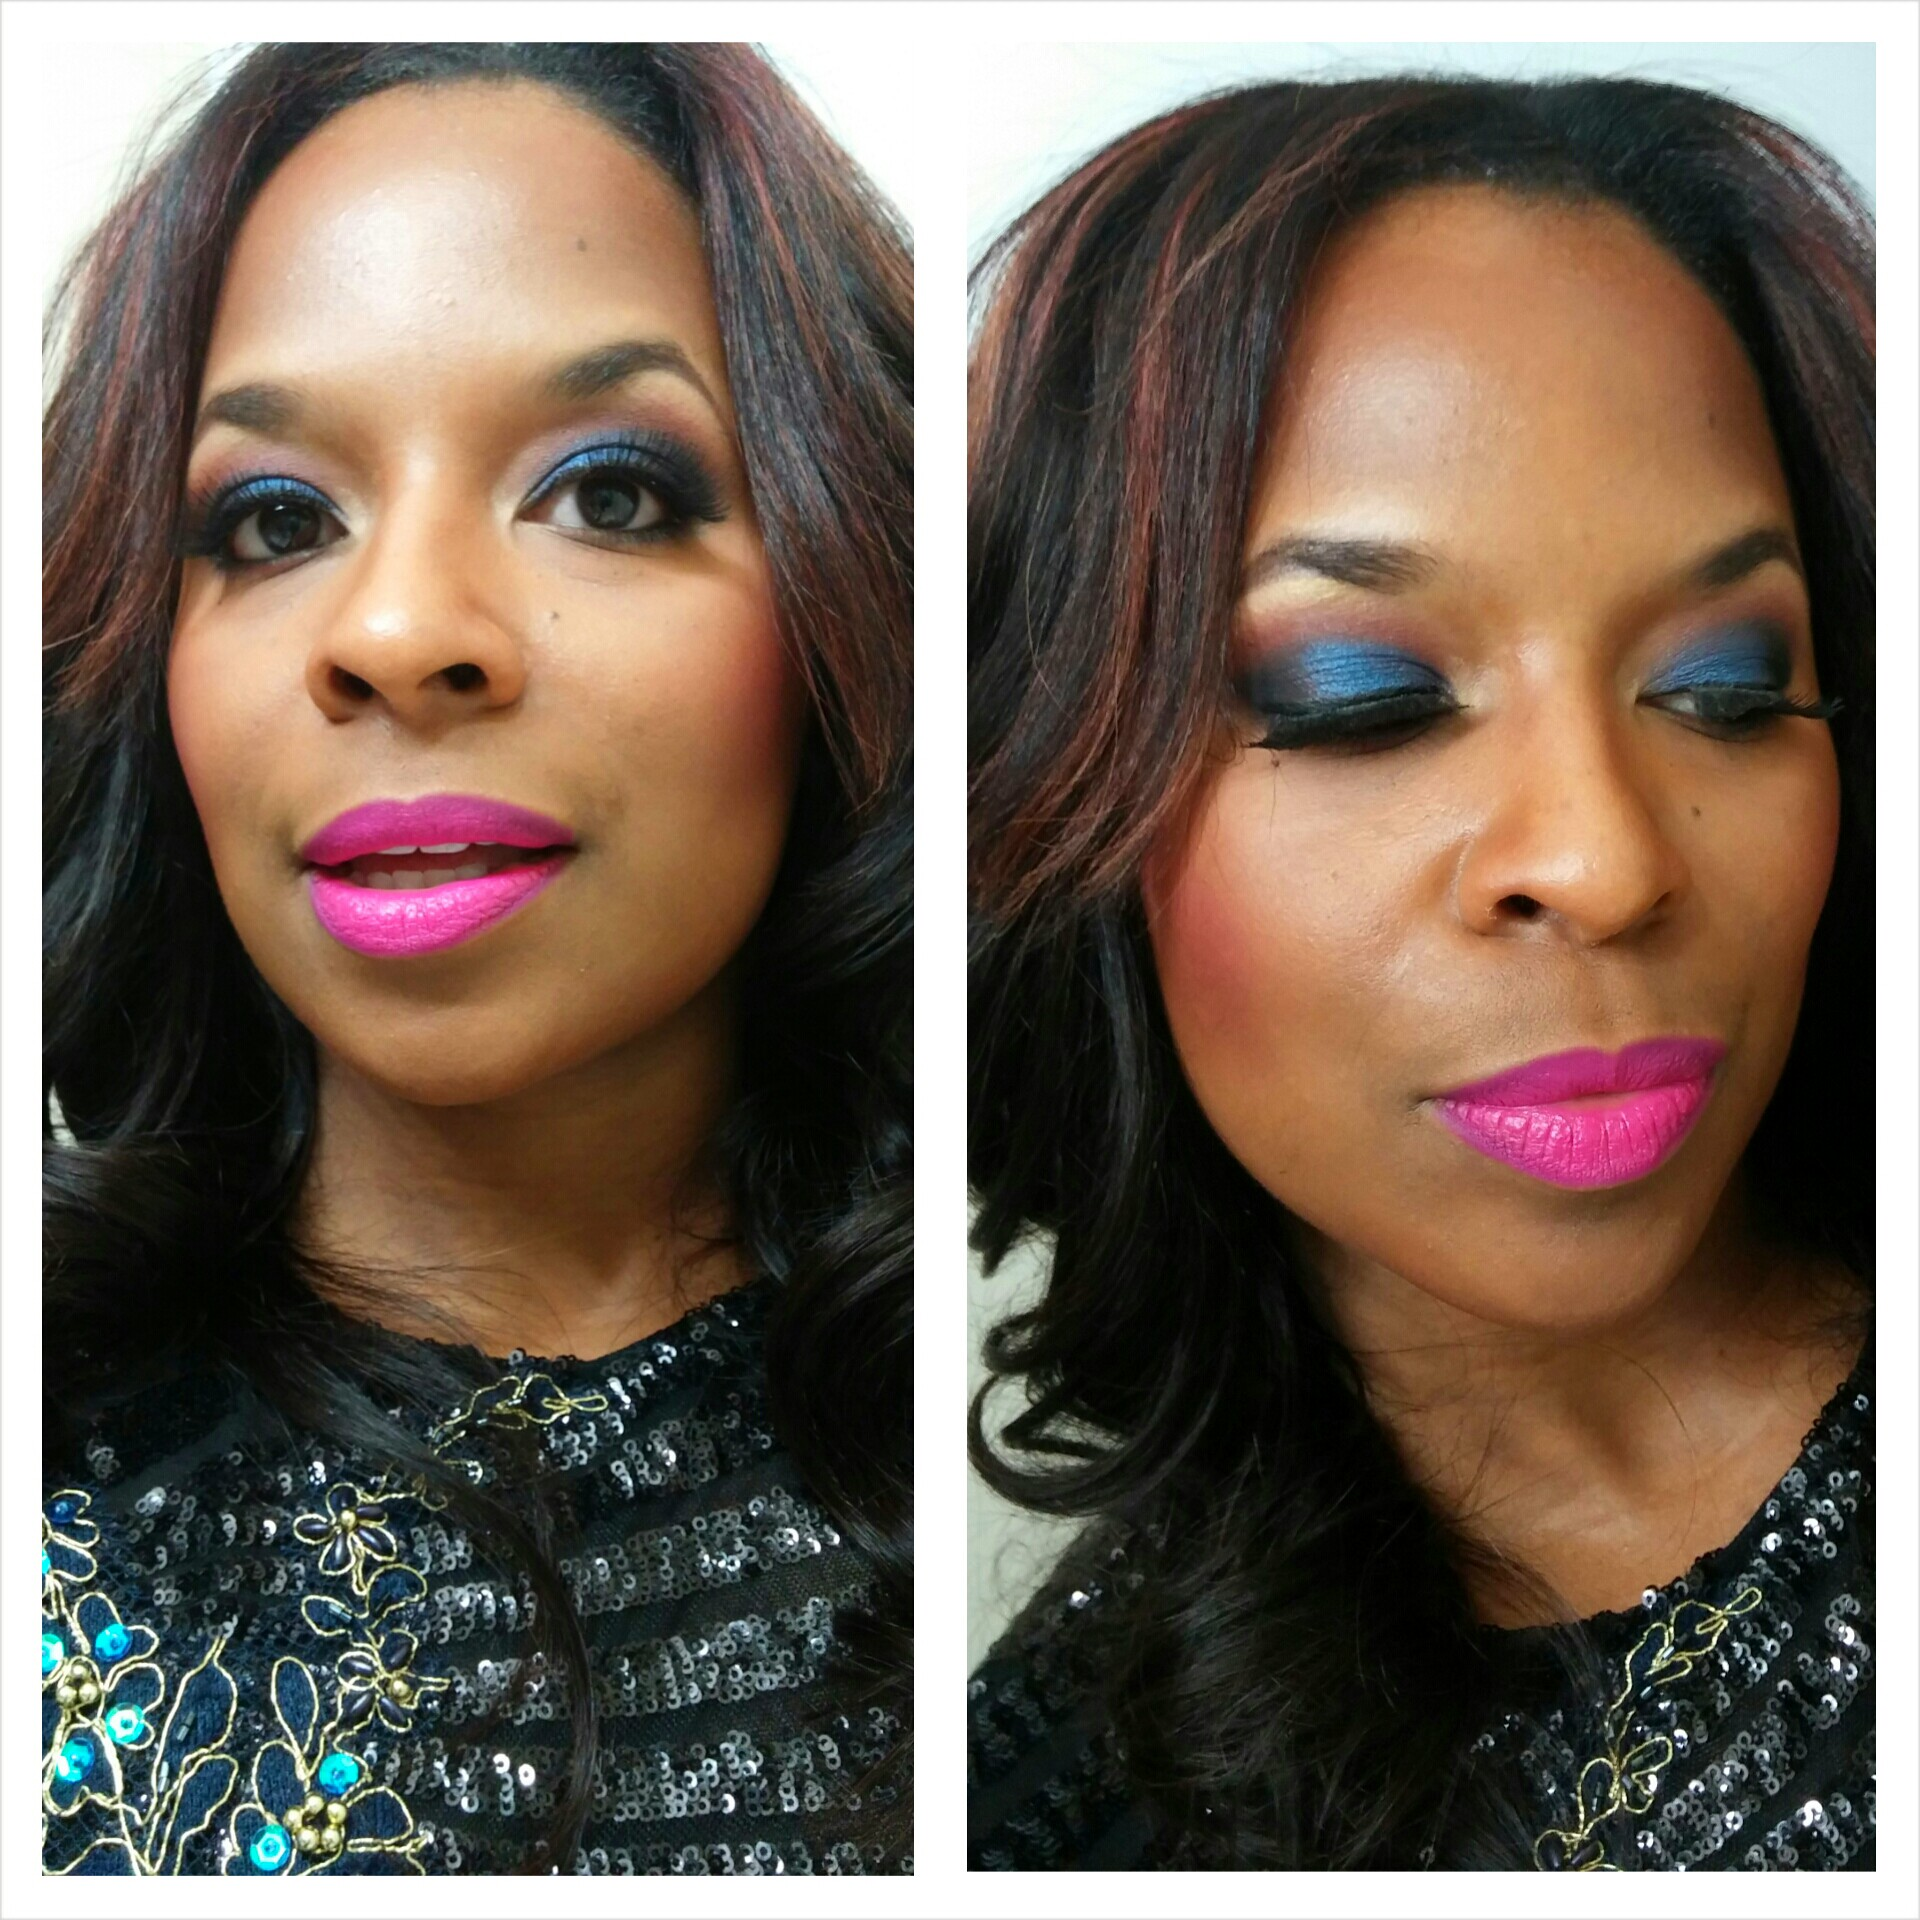 Make-up I did for the night. I love Mac's Candy Yum Yum lipstick.